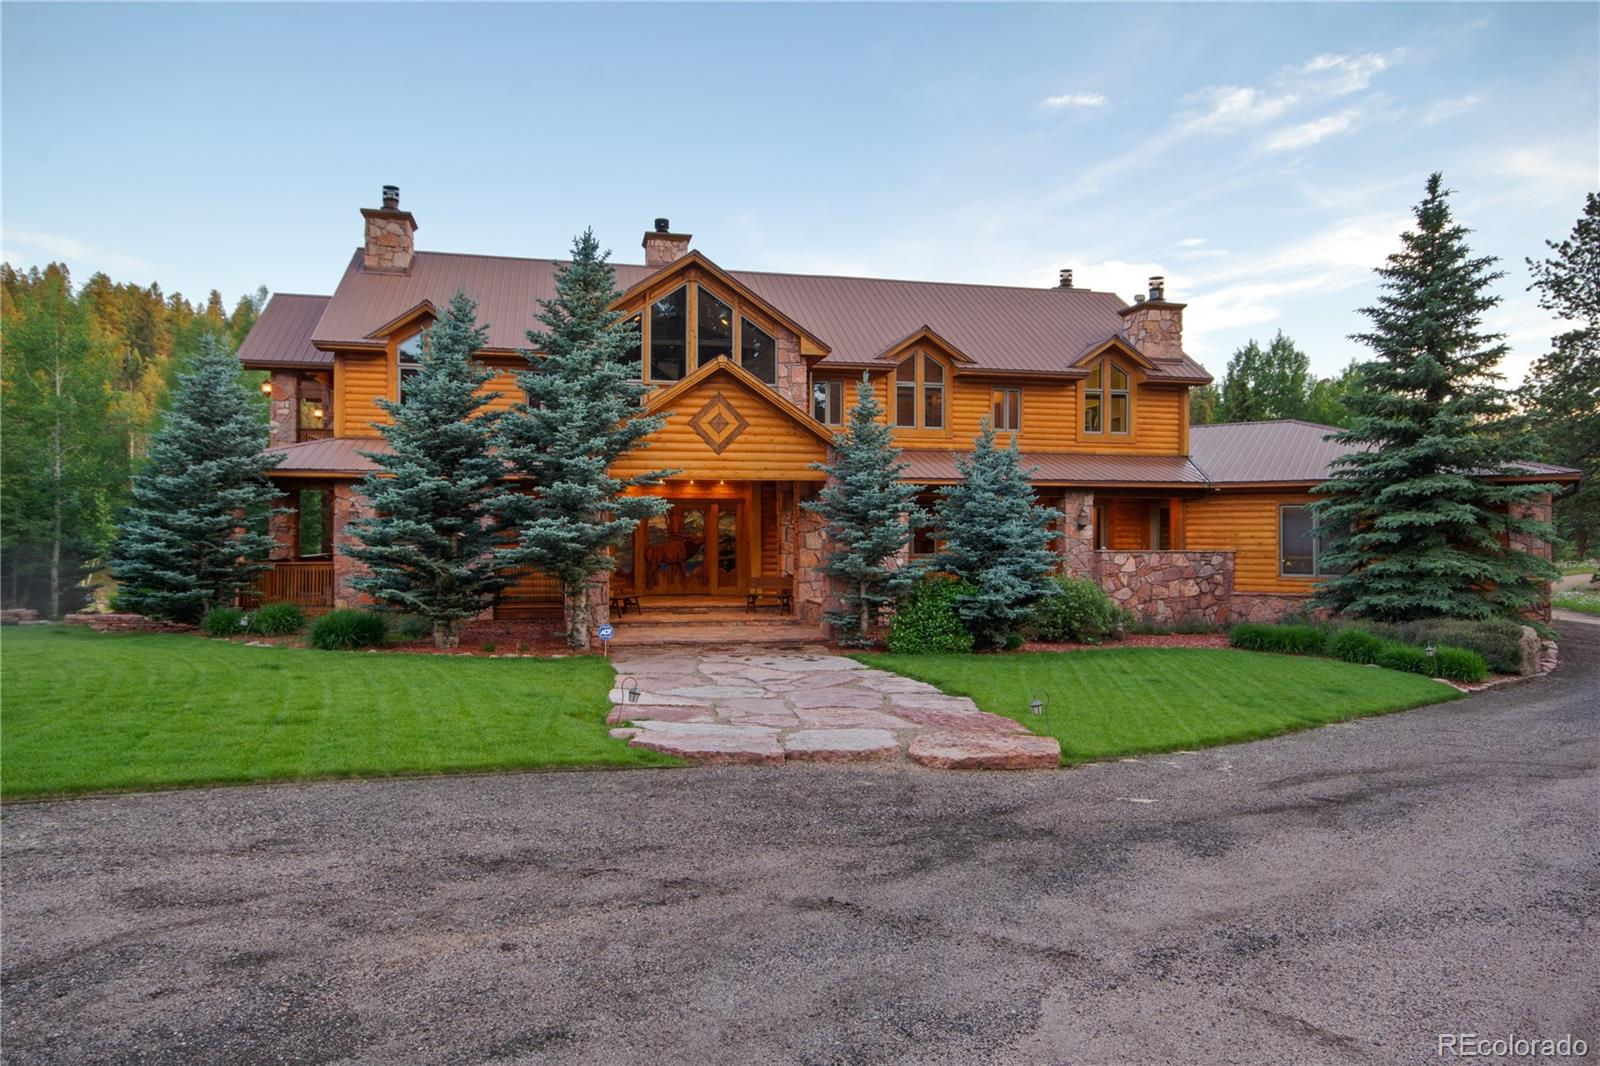 Once in a lifetime, an opportunity comes along to own a spectacular Colorado ranch in the Rockies. This 113 acre ranch is 45 minutes west of Colorado Springs, and the Colorado Springs airport has a 13,500 foot runway. Welcome to Sunrise ranch, the essence of a luxury gentleman's ranch. As one opens the hand-carved and stained glass, wooden doors, one becomes enveloped in the log and stone home. The house is located and 9,000 feet altitude and is a large estate - offering all the amenities one would expect in a first-class property. The main residence is 9,7779 sq ft and overlooks a trout-stocked pond. The 6,000 square foot freshly stained redwood deck, overlooks the water. With various outbuildings, the estate comfortably accommodates 20+ people, making it perfect for a family destination, corporate retreat or hunting lodge. You will find a diverse range of animals on the property for hunting and fishing. The possibilities are infinite with this extraordinary piece of property.